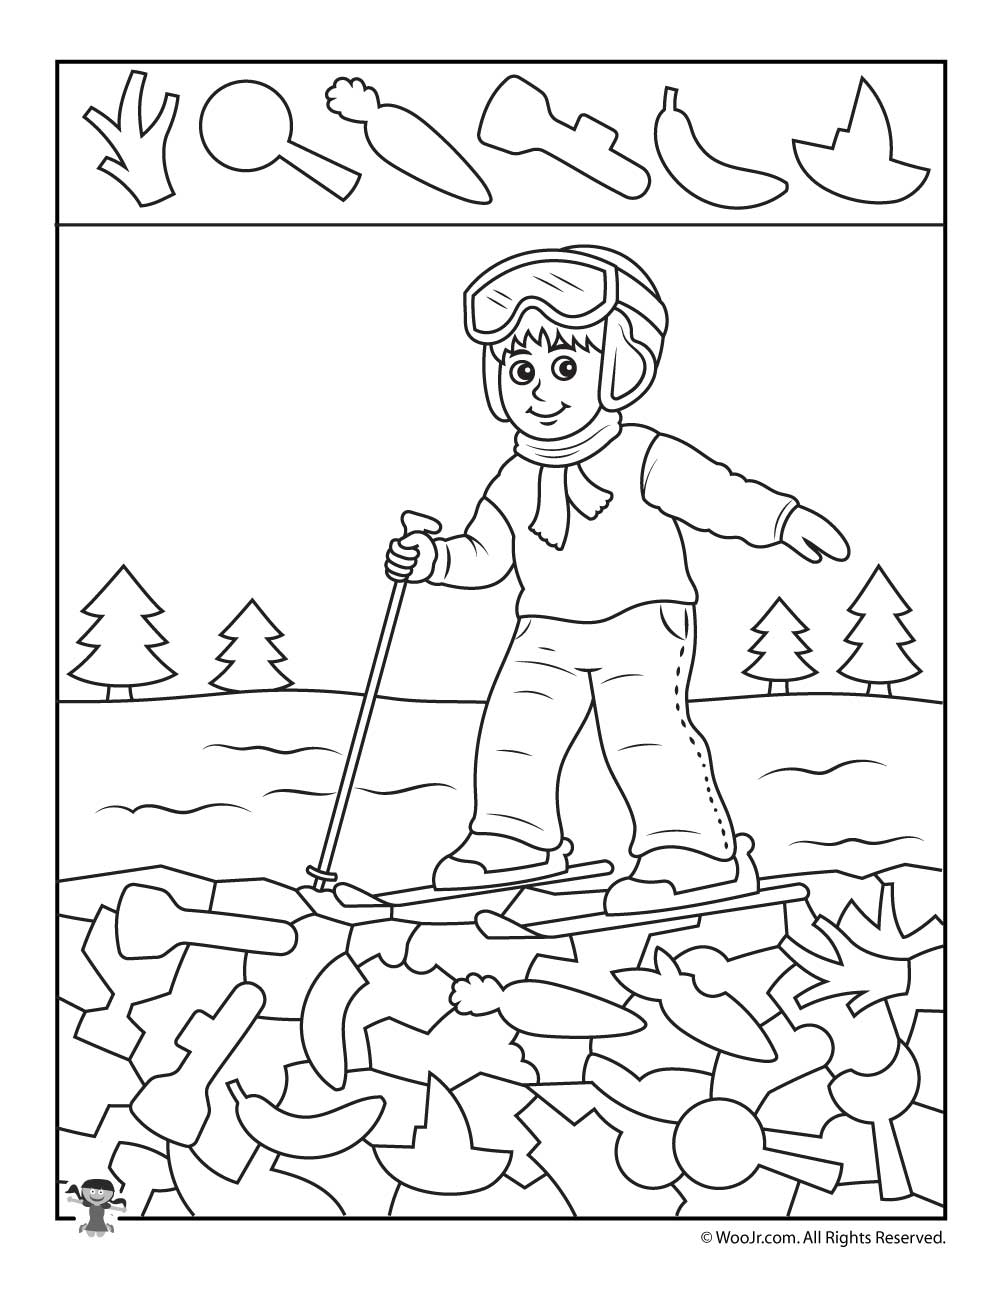 Skiing Boy I Spy Worksheet | Woo! Jr. Kids Activities